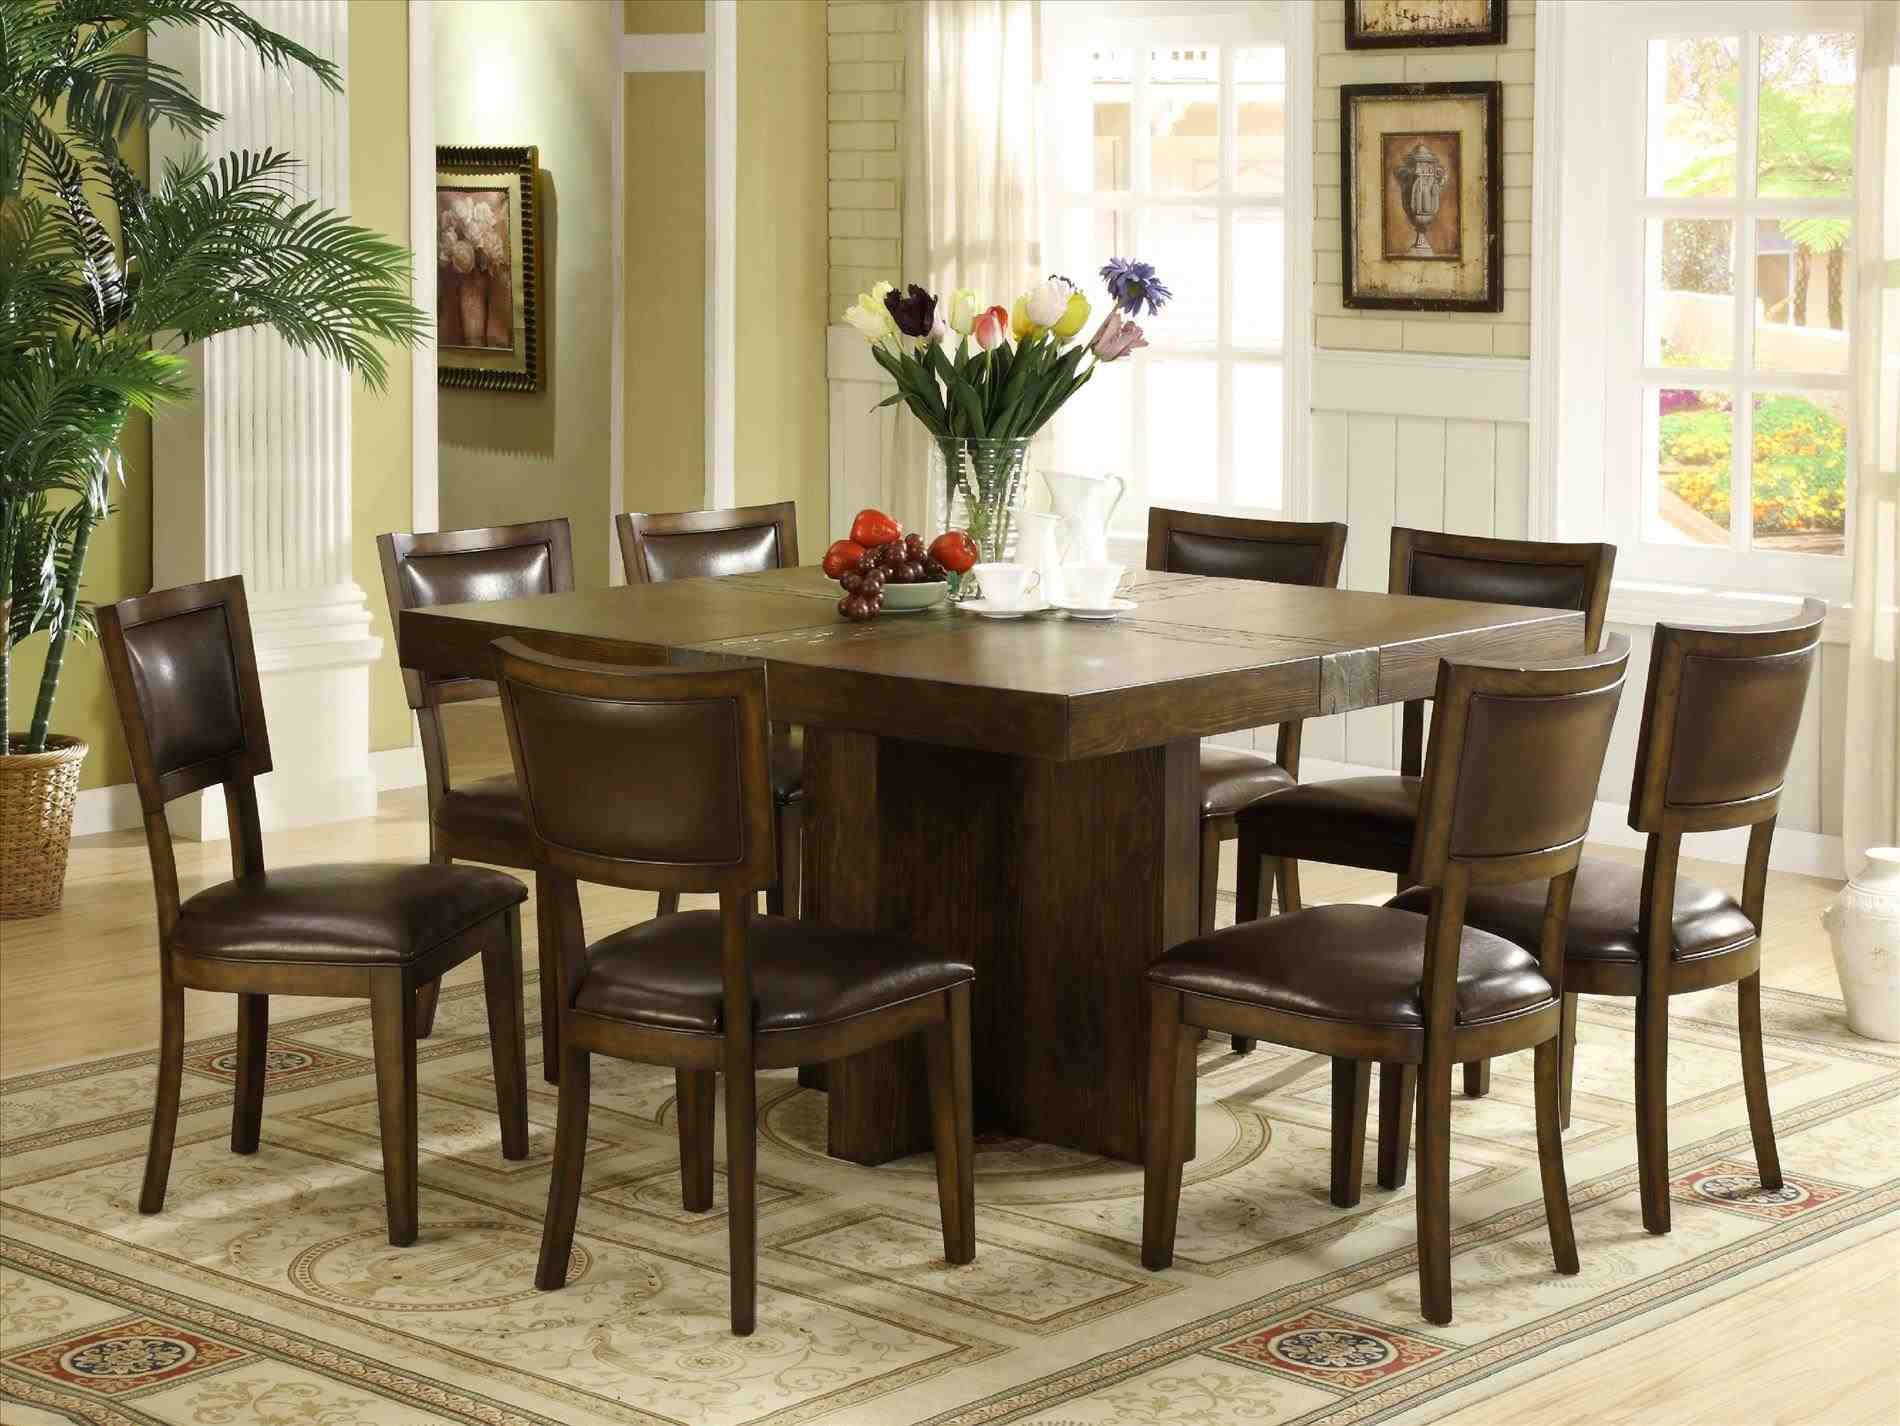 new post square kitchen table sets for 4   decors ideas   pinterest